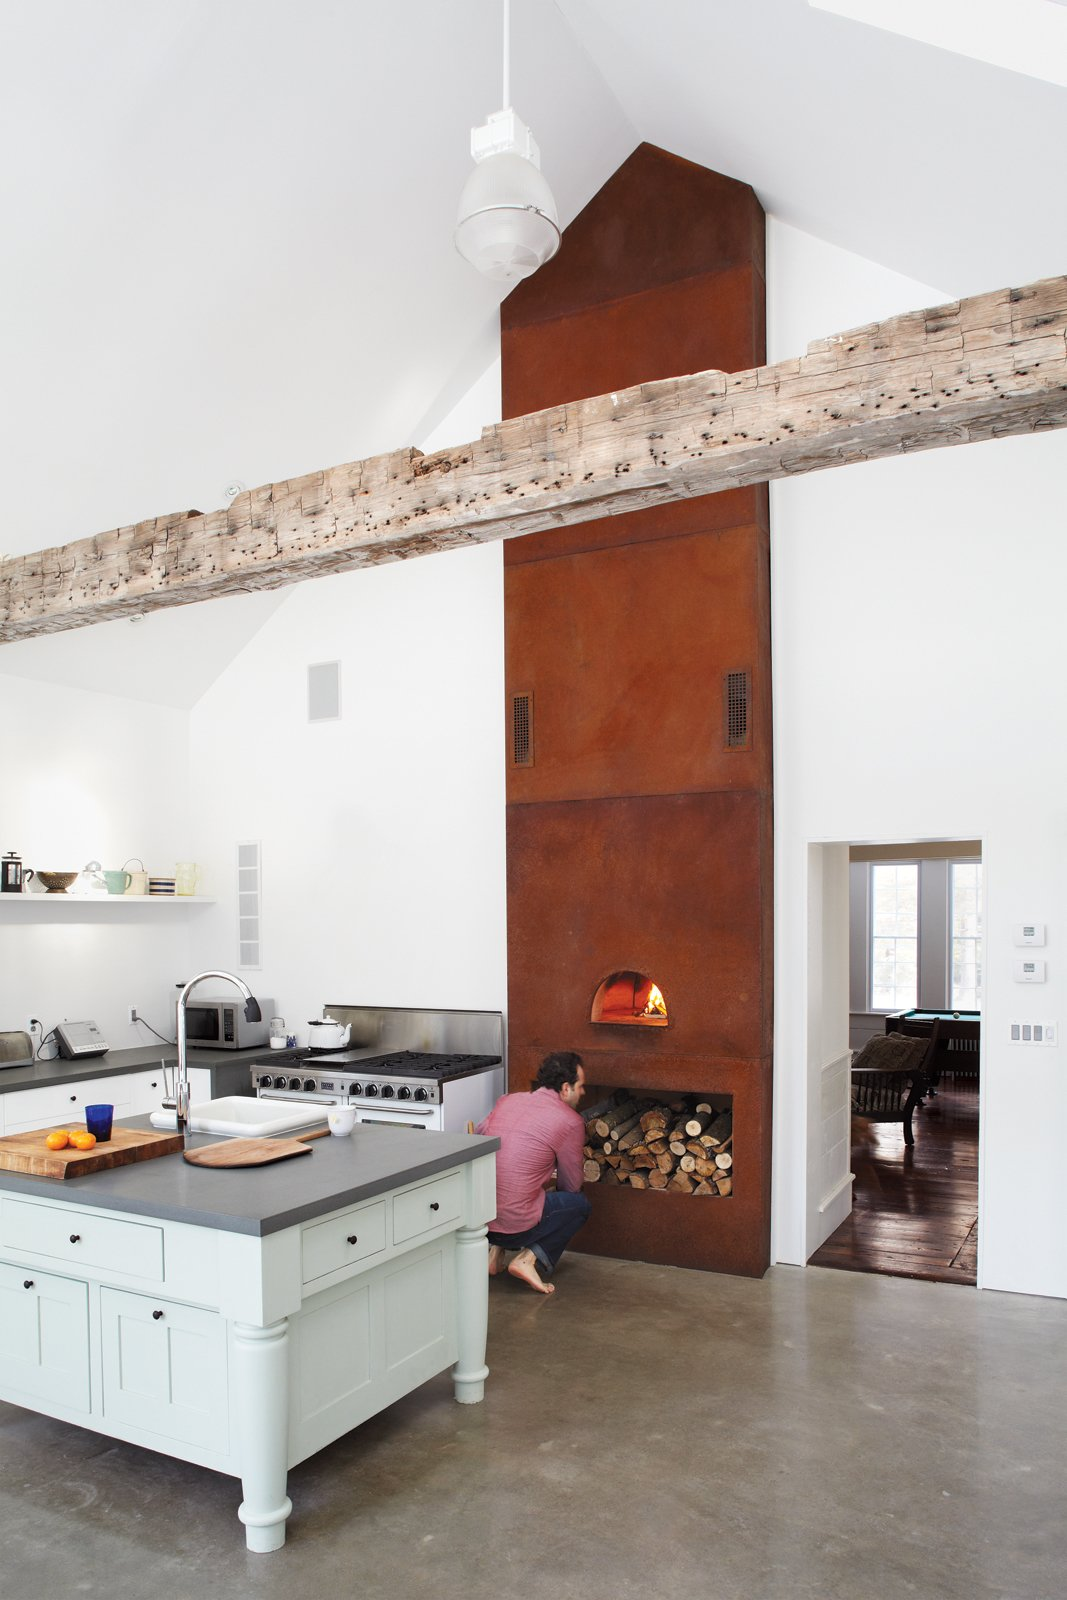 In the kitchen of Floating Farmhouse in Eldred, New York, a custom-built wood-fired oven extends up to the ceiling, accentuating its steep pitch. Photo by Mark Mahaney.  Photo 2 of 12 in Hope Floats